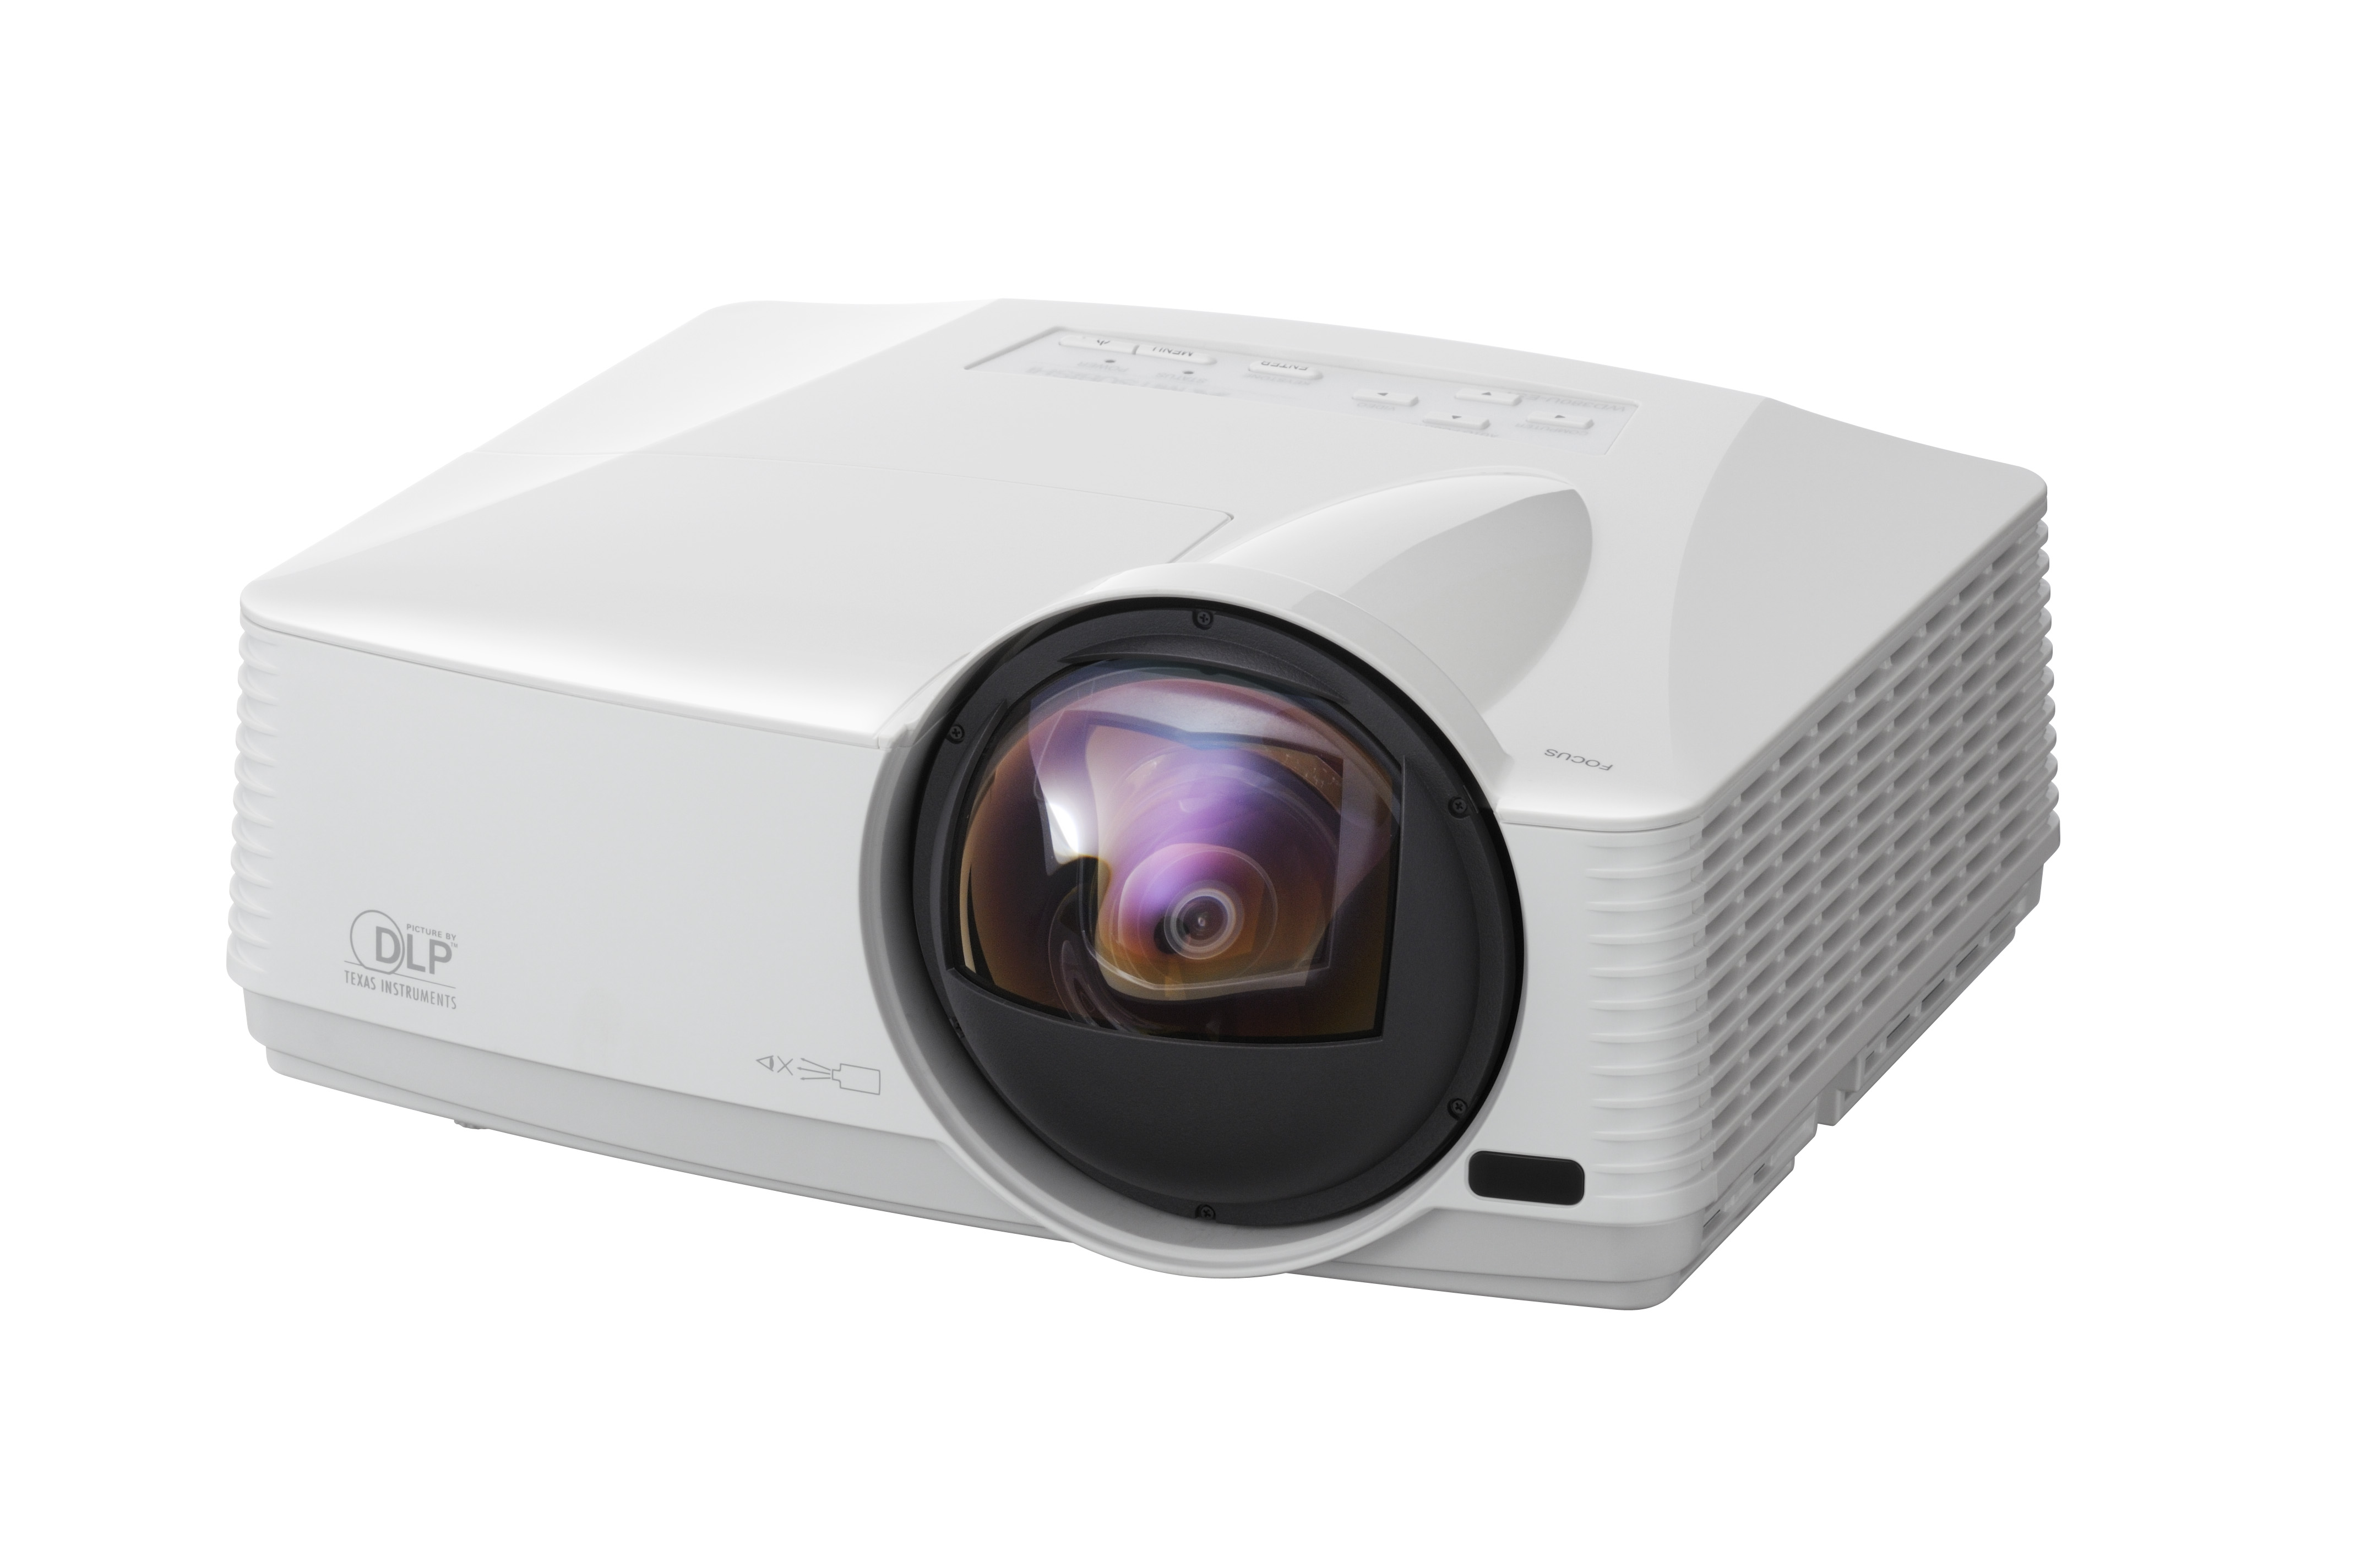 Mitsubishi-WD390U-EST interactieve projector short throw